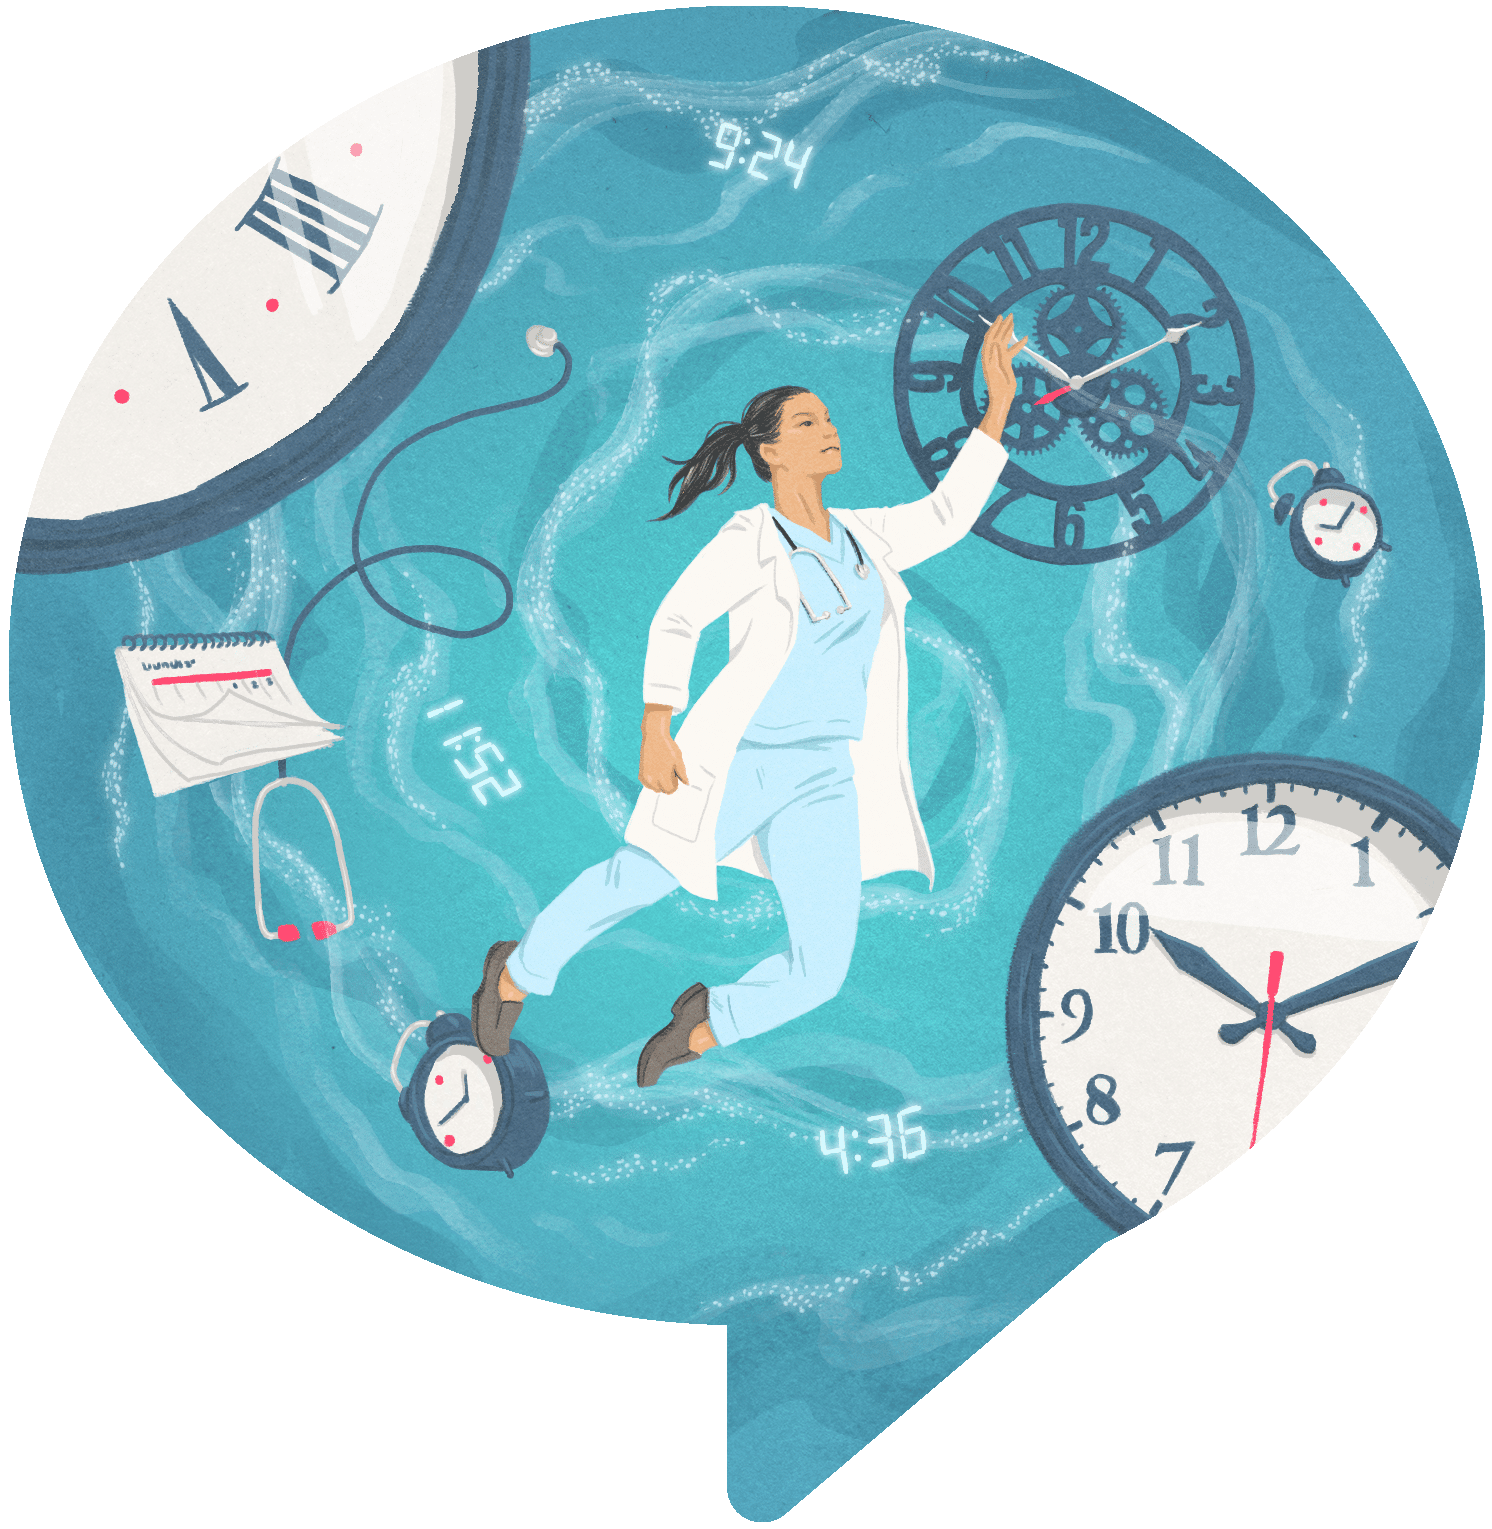 Female doctor floats in whirlpool of clocks, calendars and medical equipment